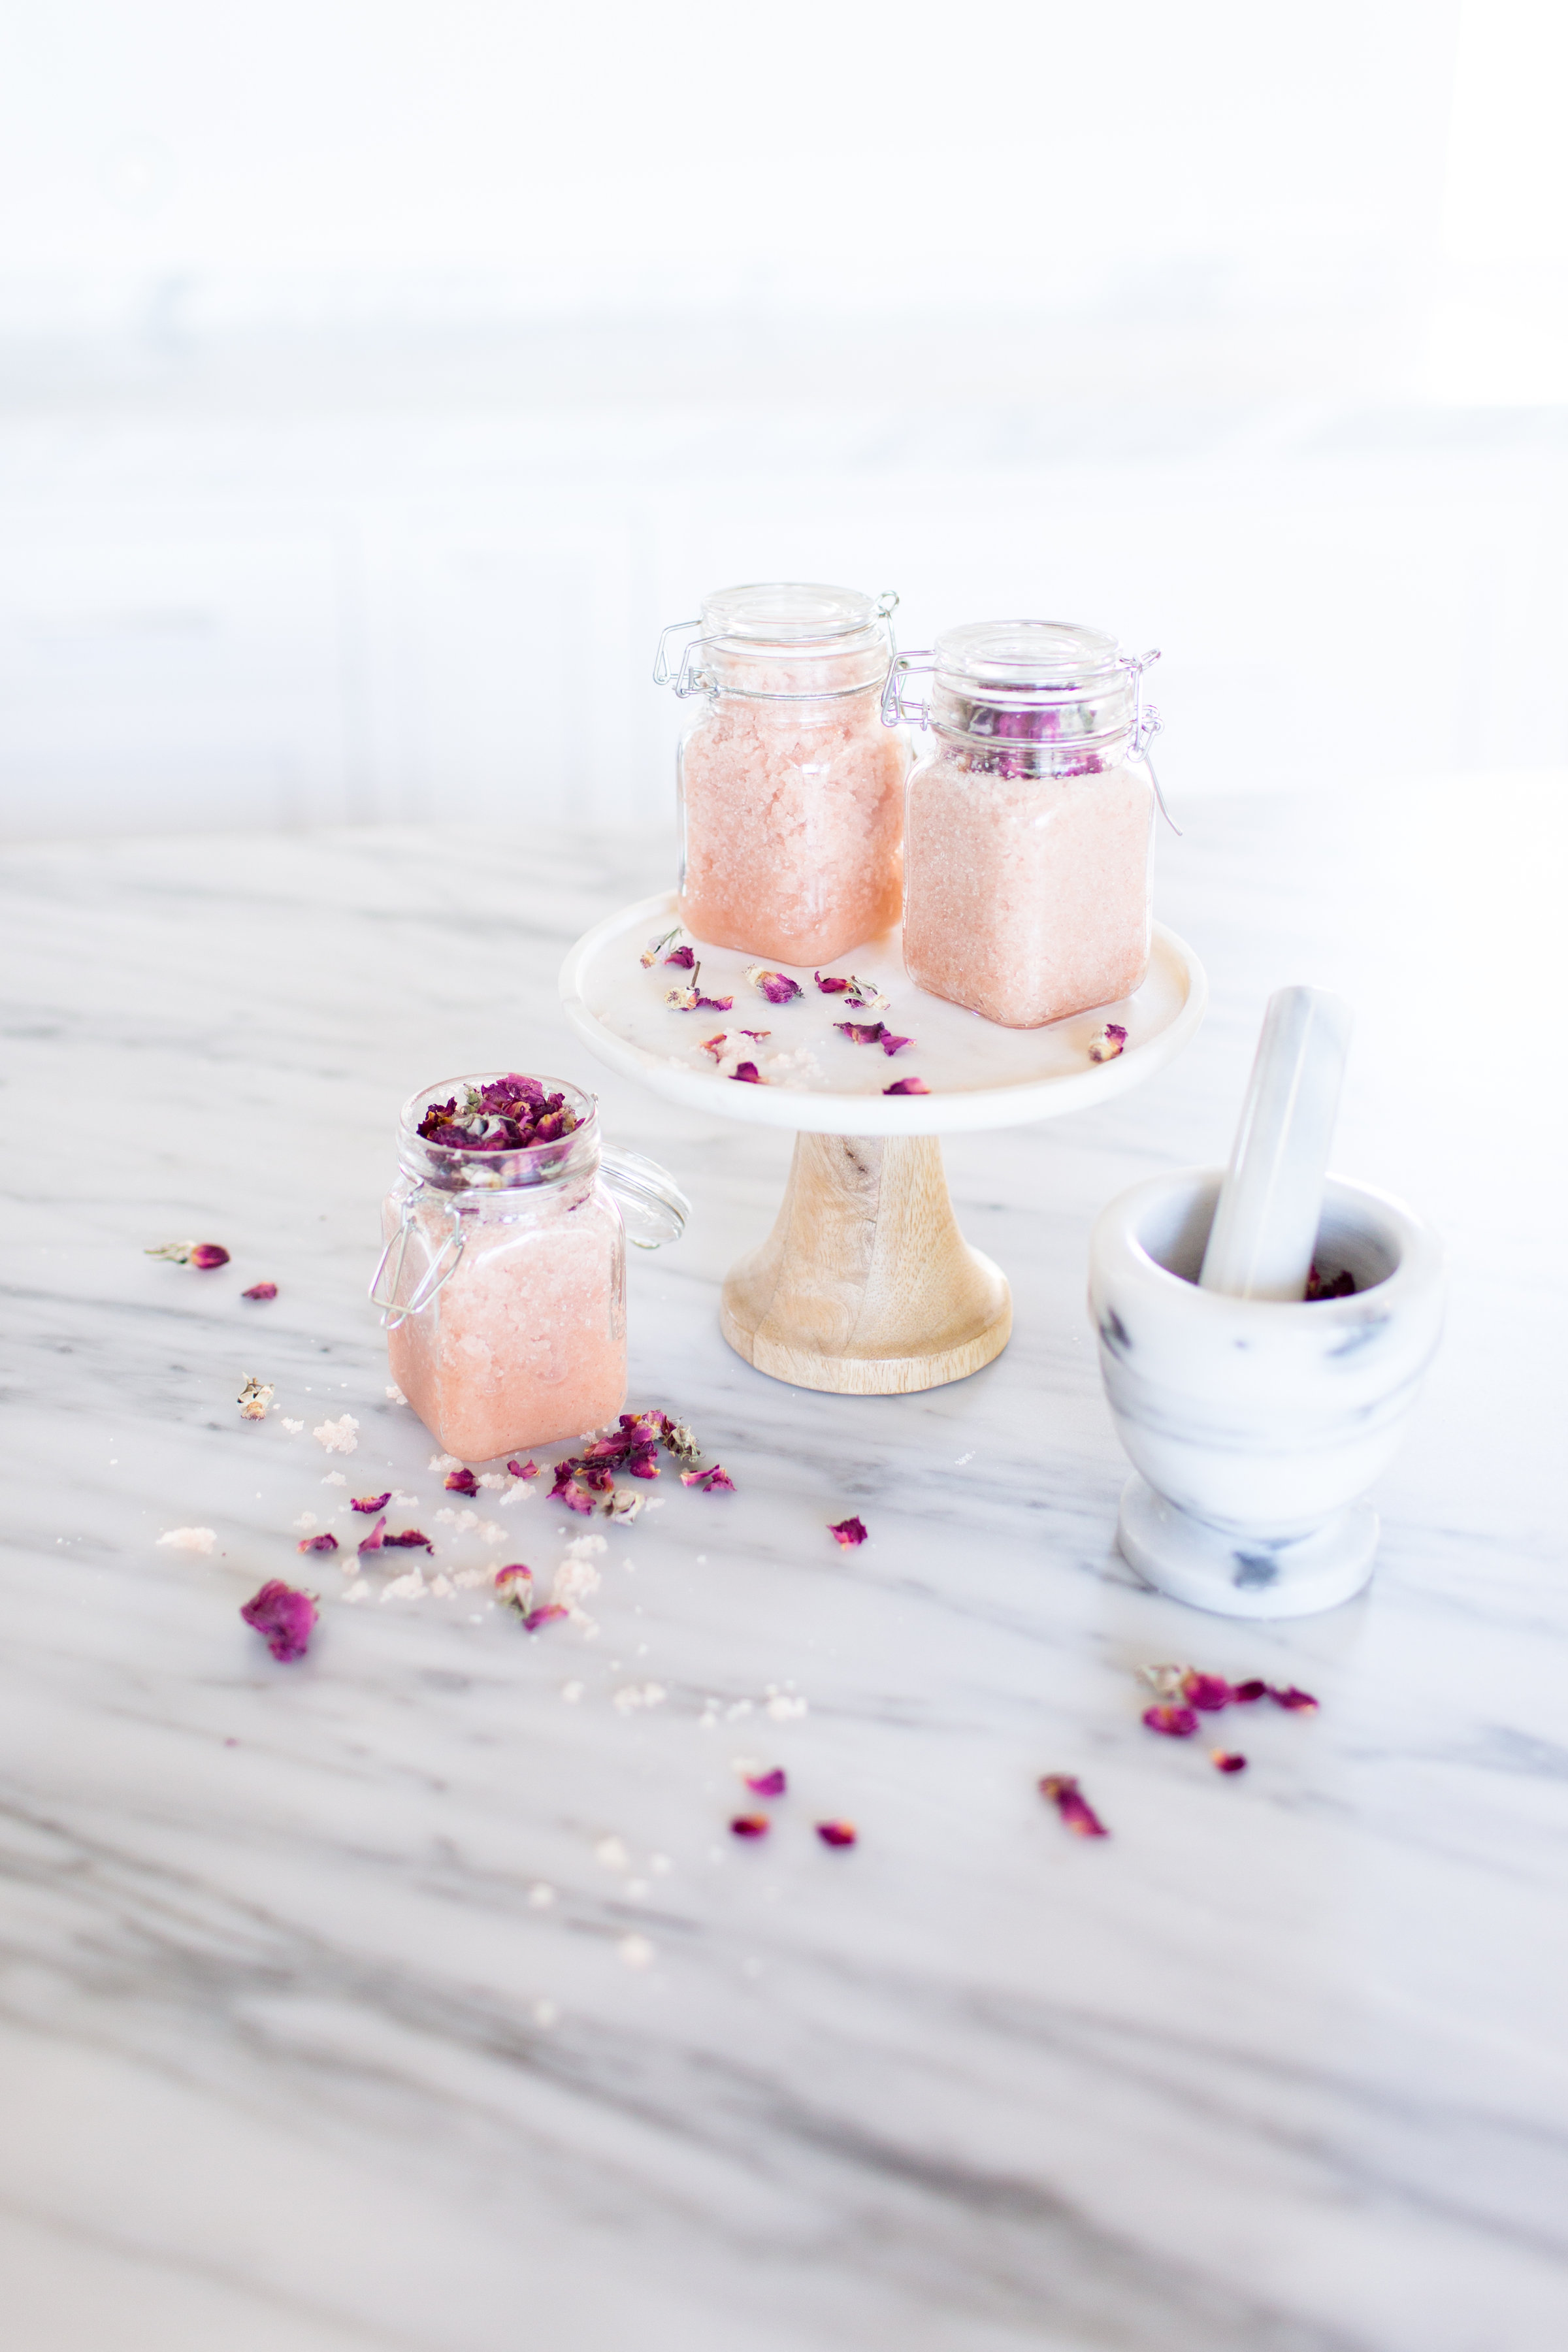 Easy DIY body polish to give as gifts (mother's day or bridesmaids!) from asavvylifestyle.com | Portraits to the People